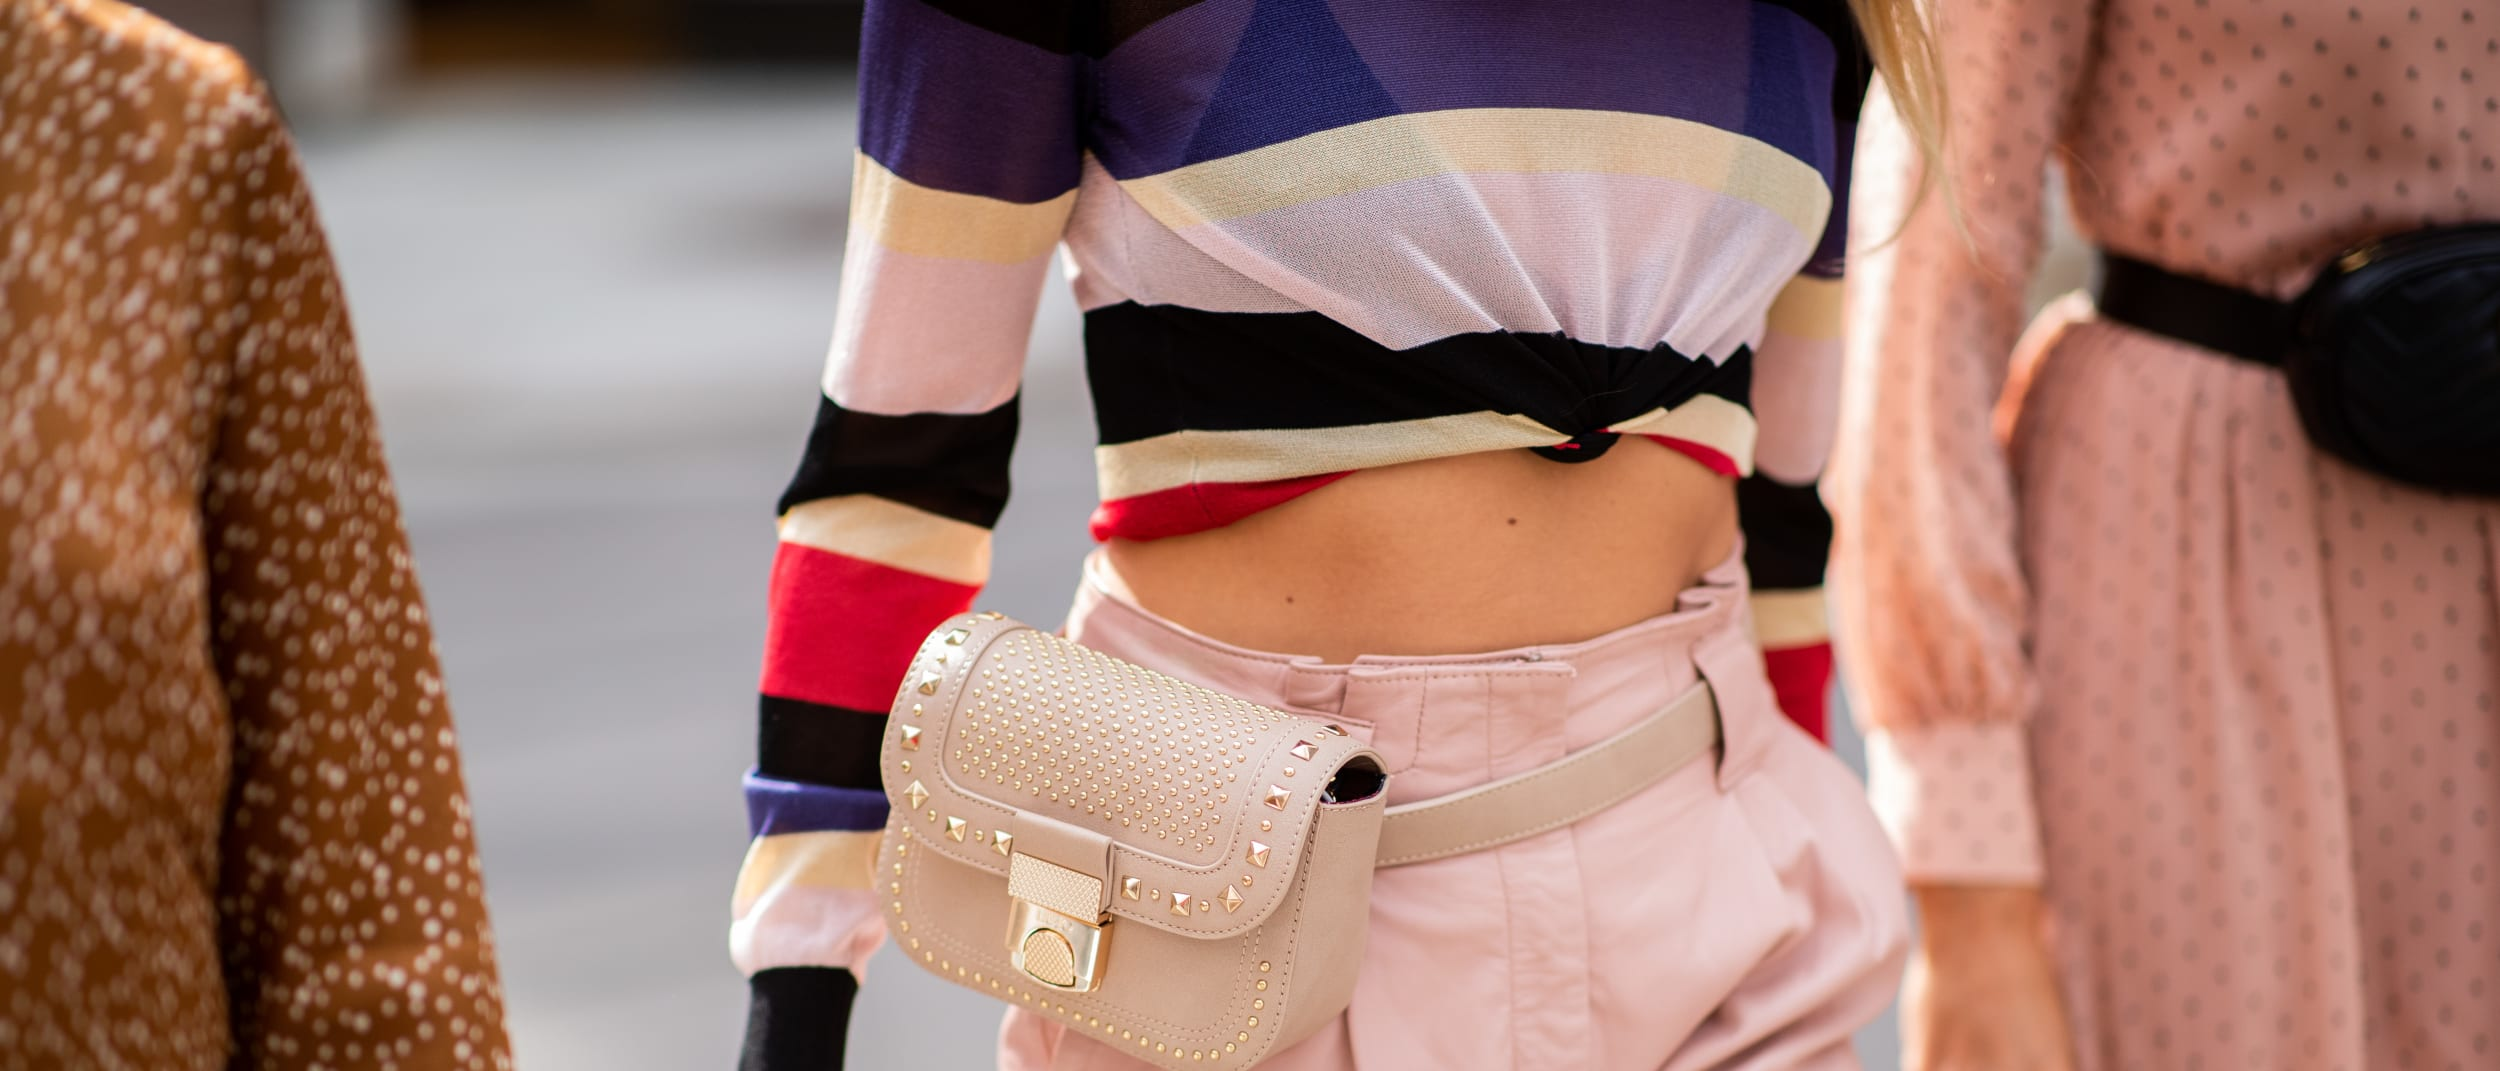 Spring reboot: 6 trend updates for a total outfit overhaul